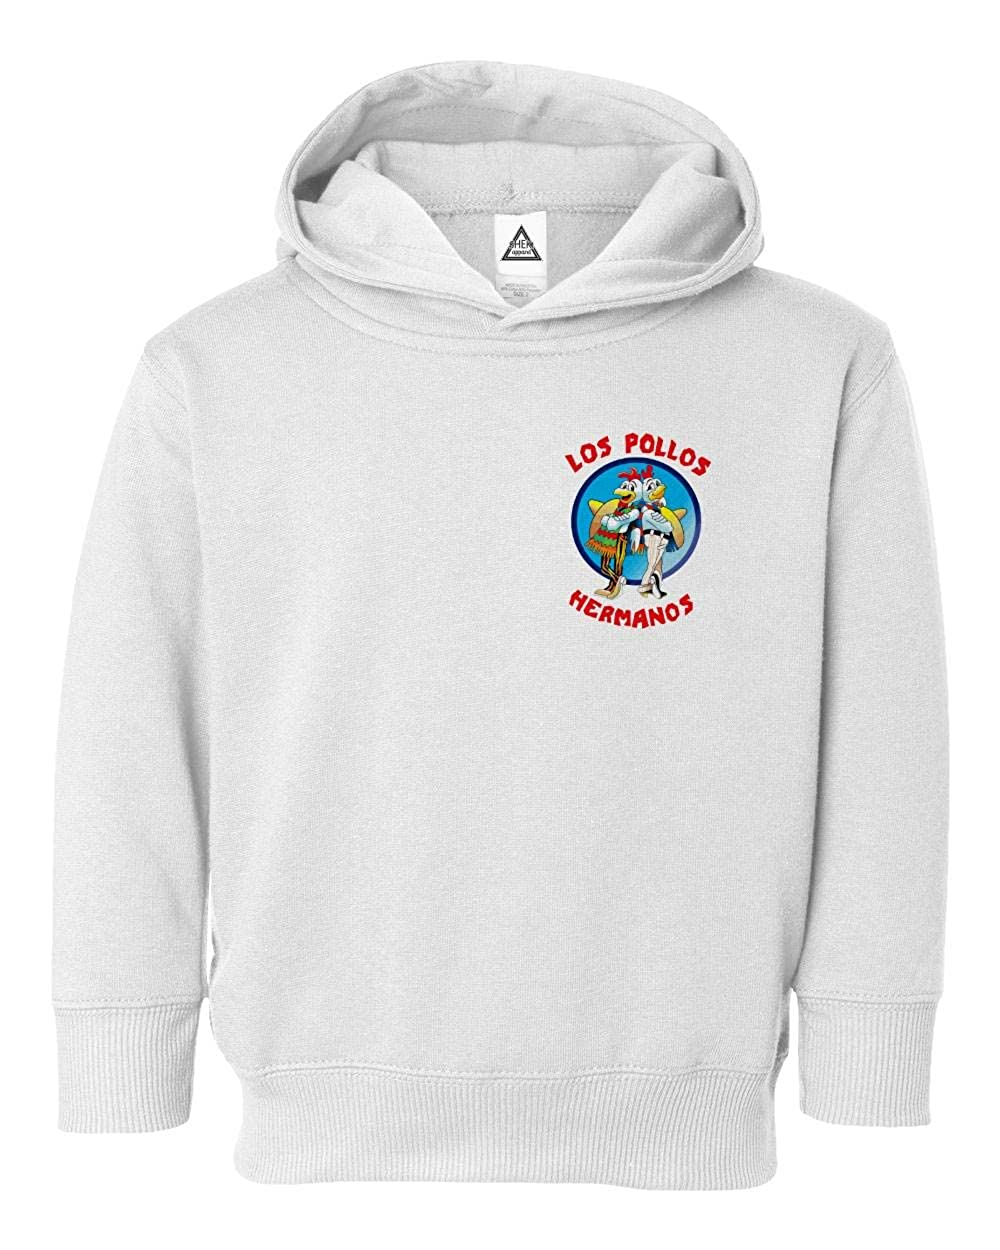 Sheki Apparel Los Pollos Hermanos Funny TV Parody Little Kids Pullover Hoodie Toddler Sweatshirt